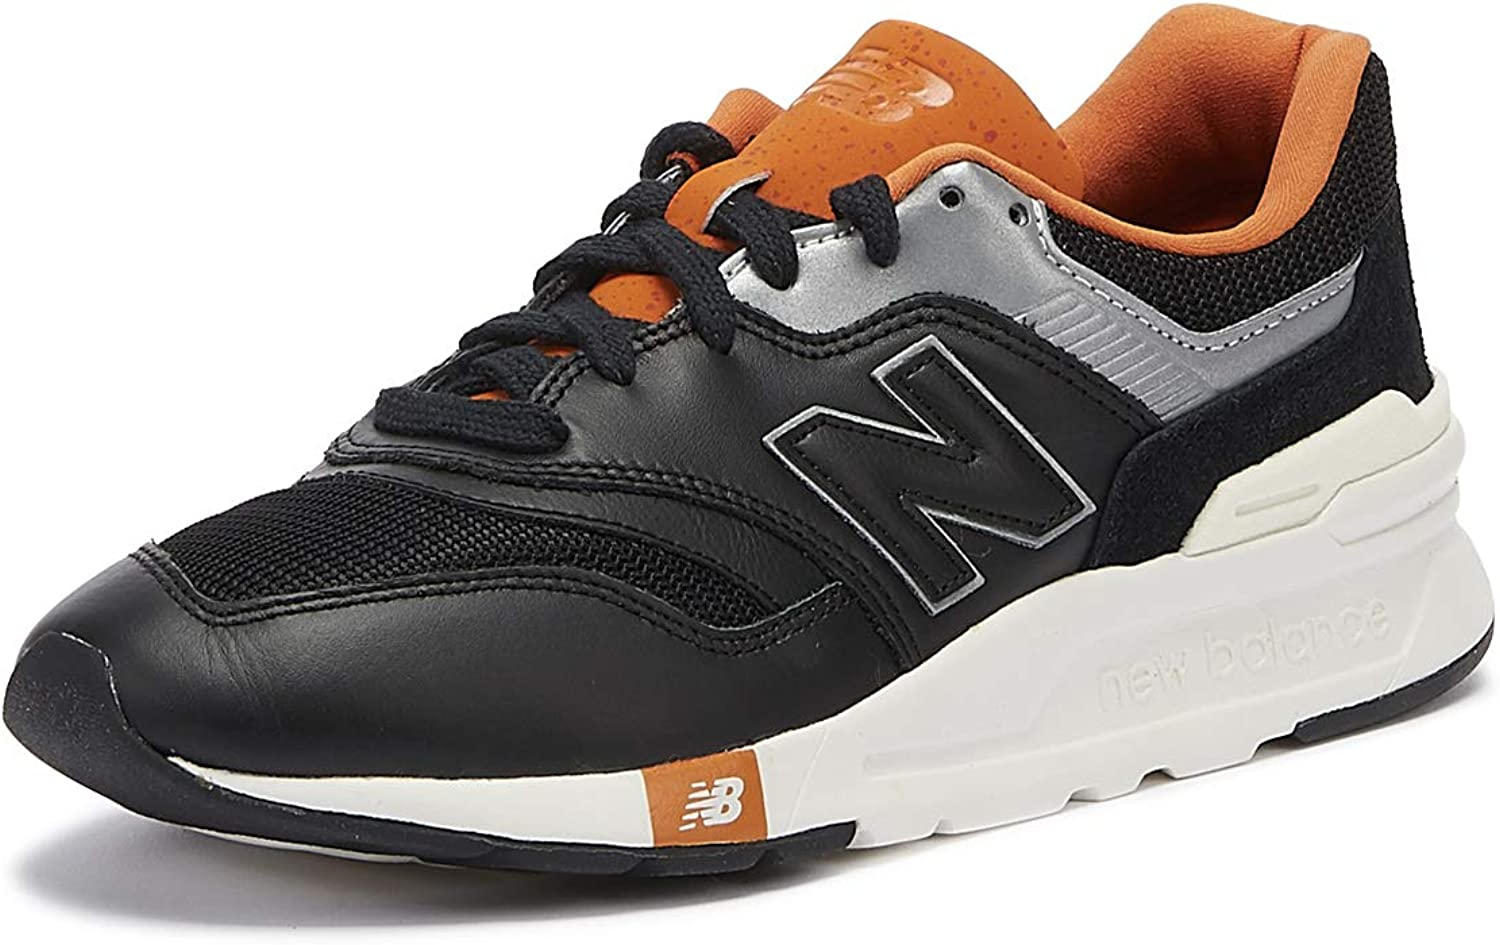 New Balance Men's 997H Leather Trainers, Black